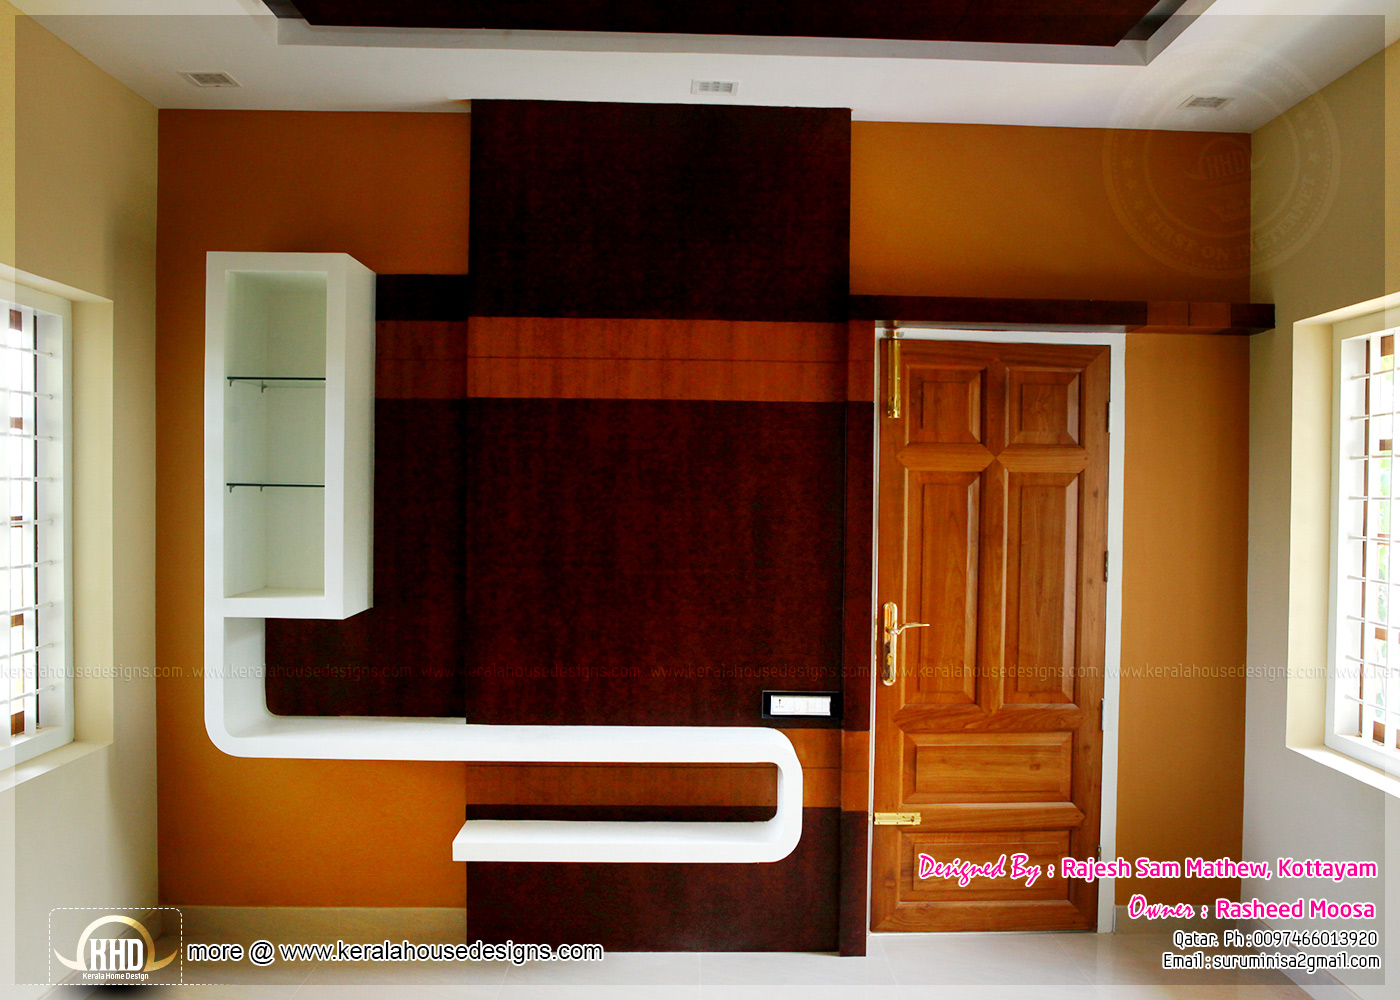 Kerala interior design with photos kerala home design for Bedroom designs tamilnadu